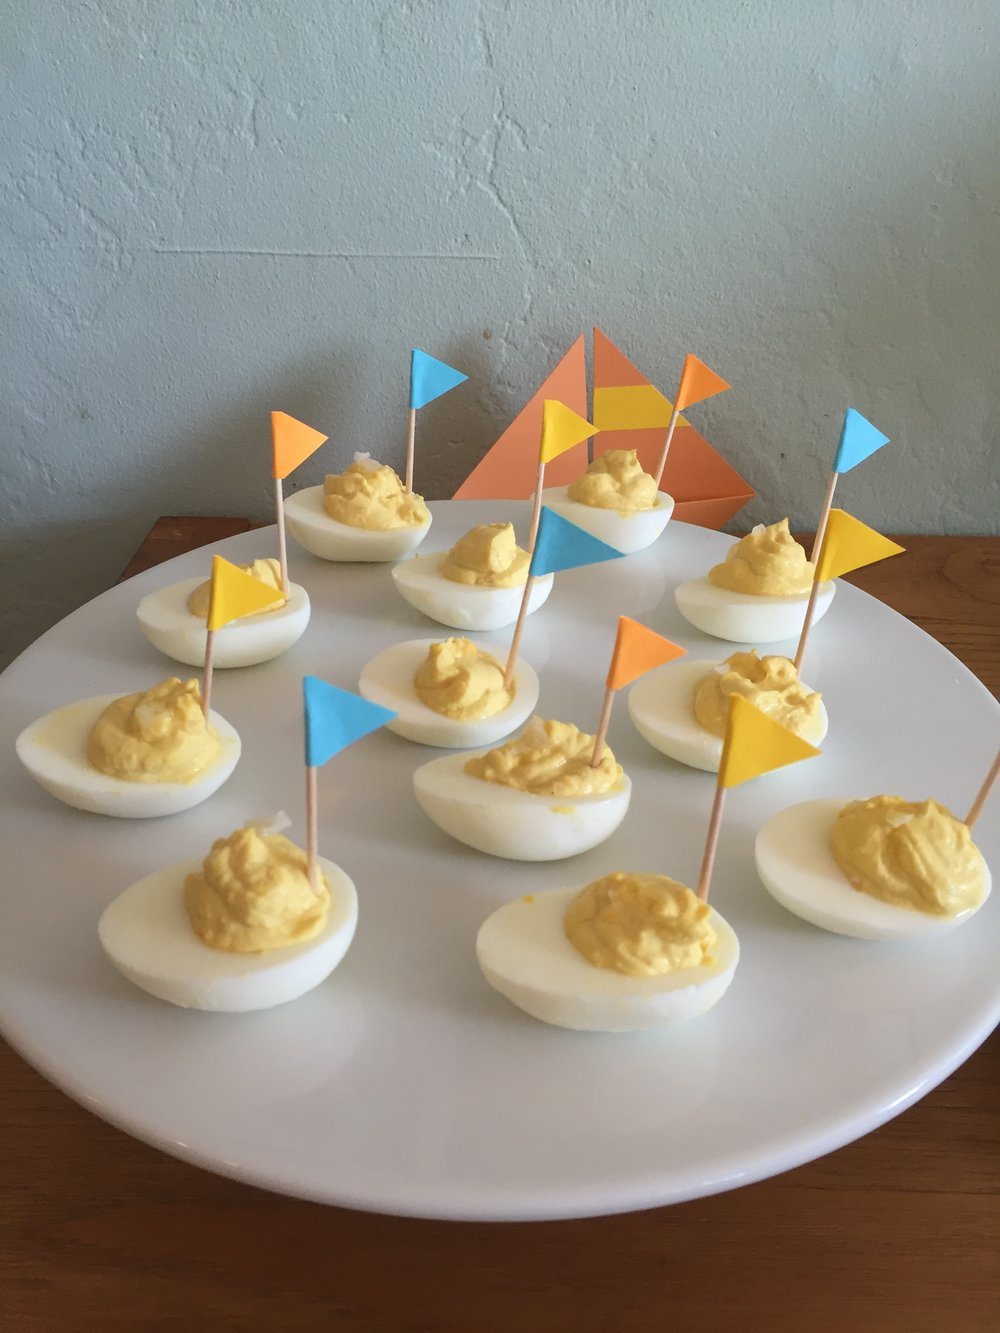 Deviled egg sailboats